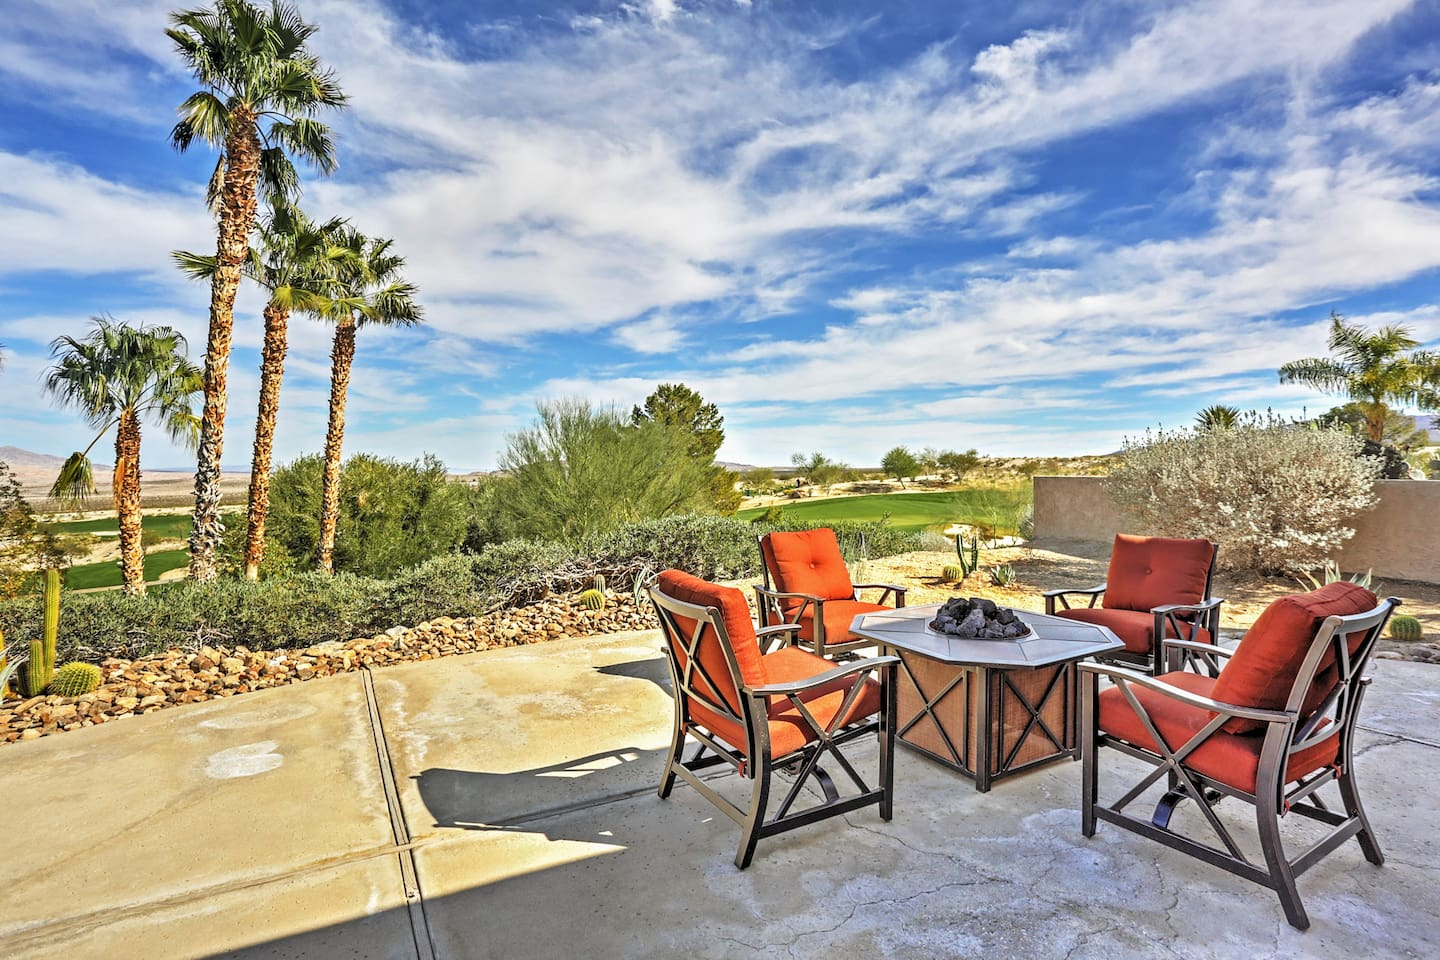 Your Borrego Springs getaway awaits at this vacation rental home!